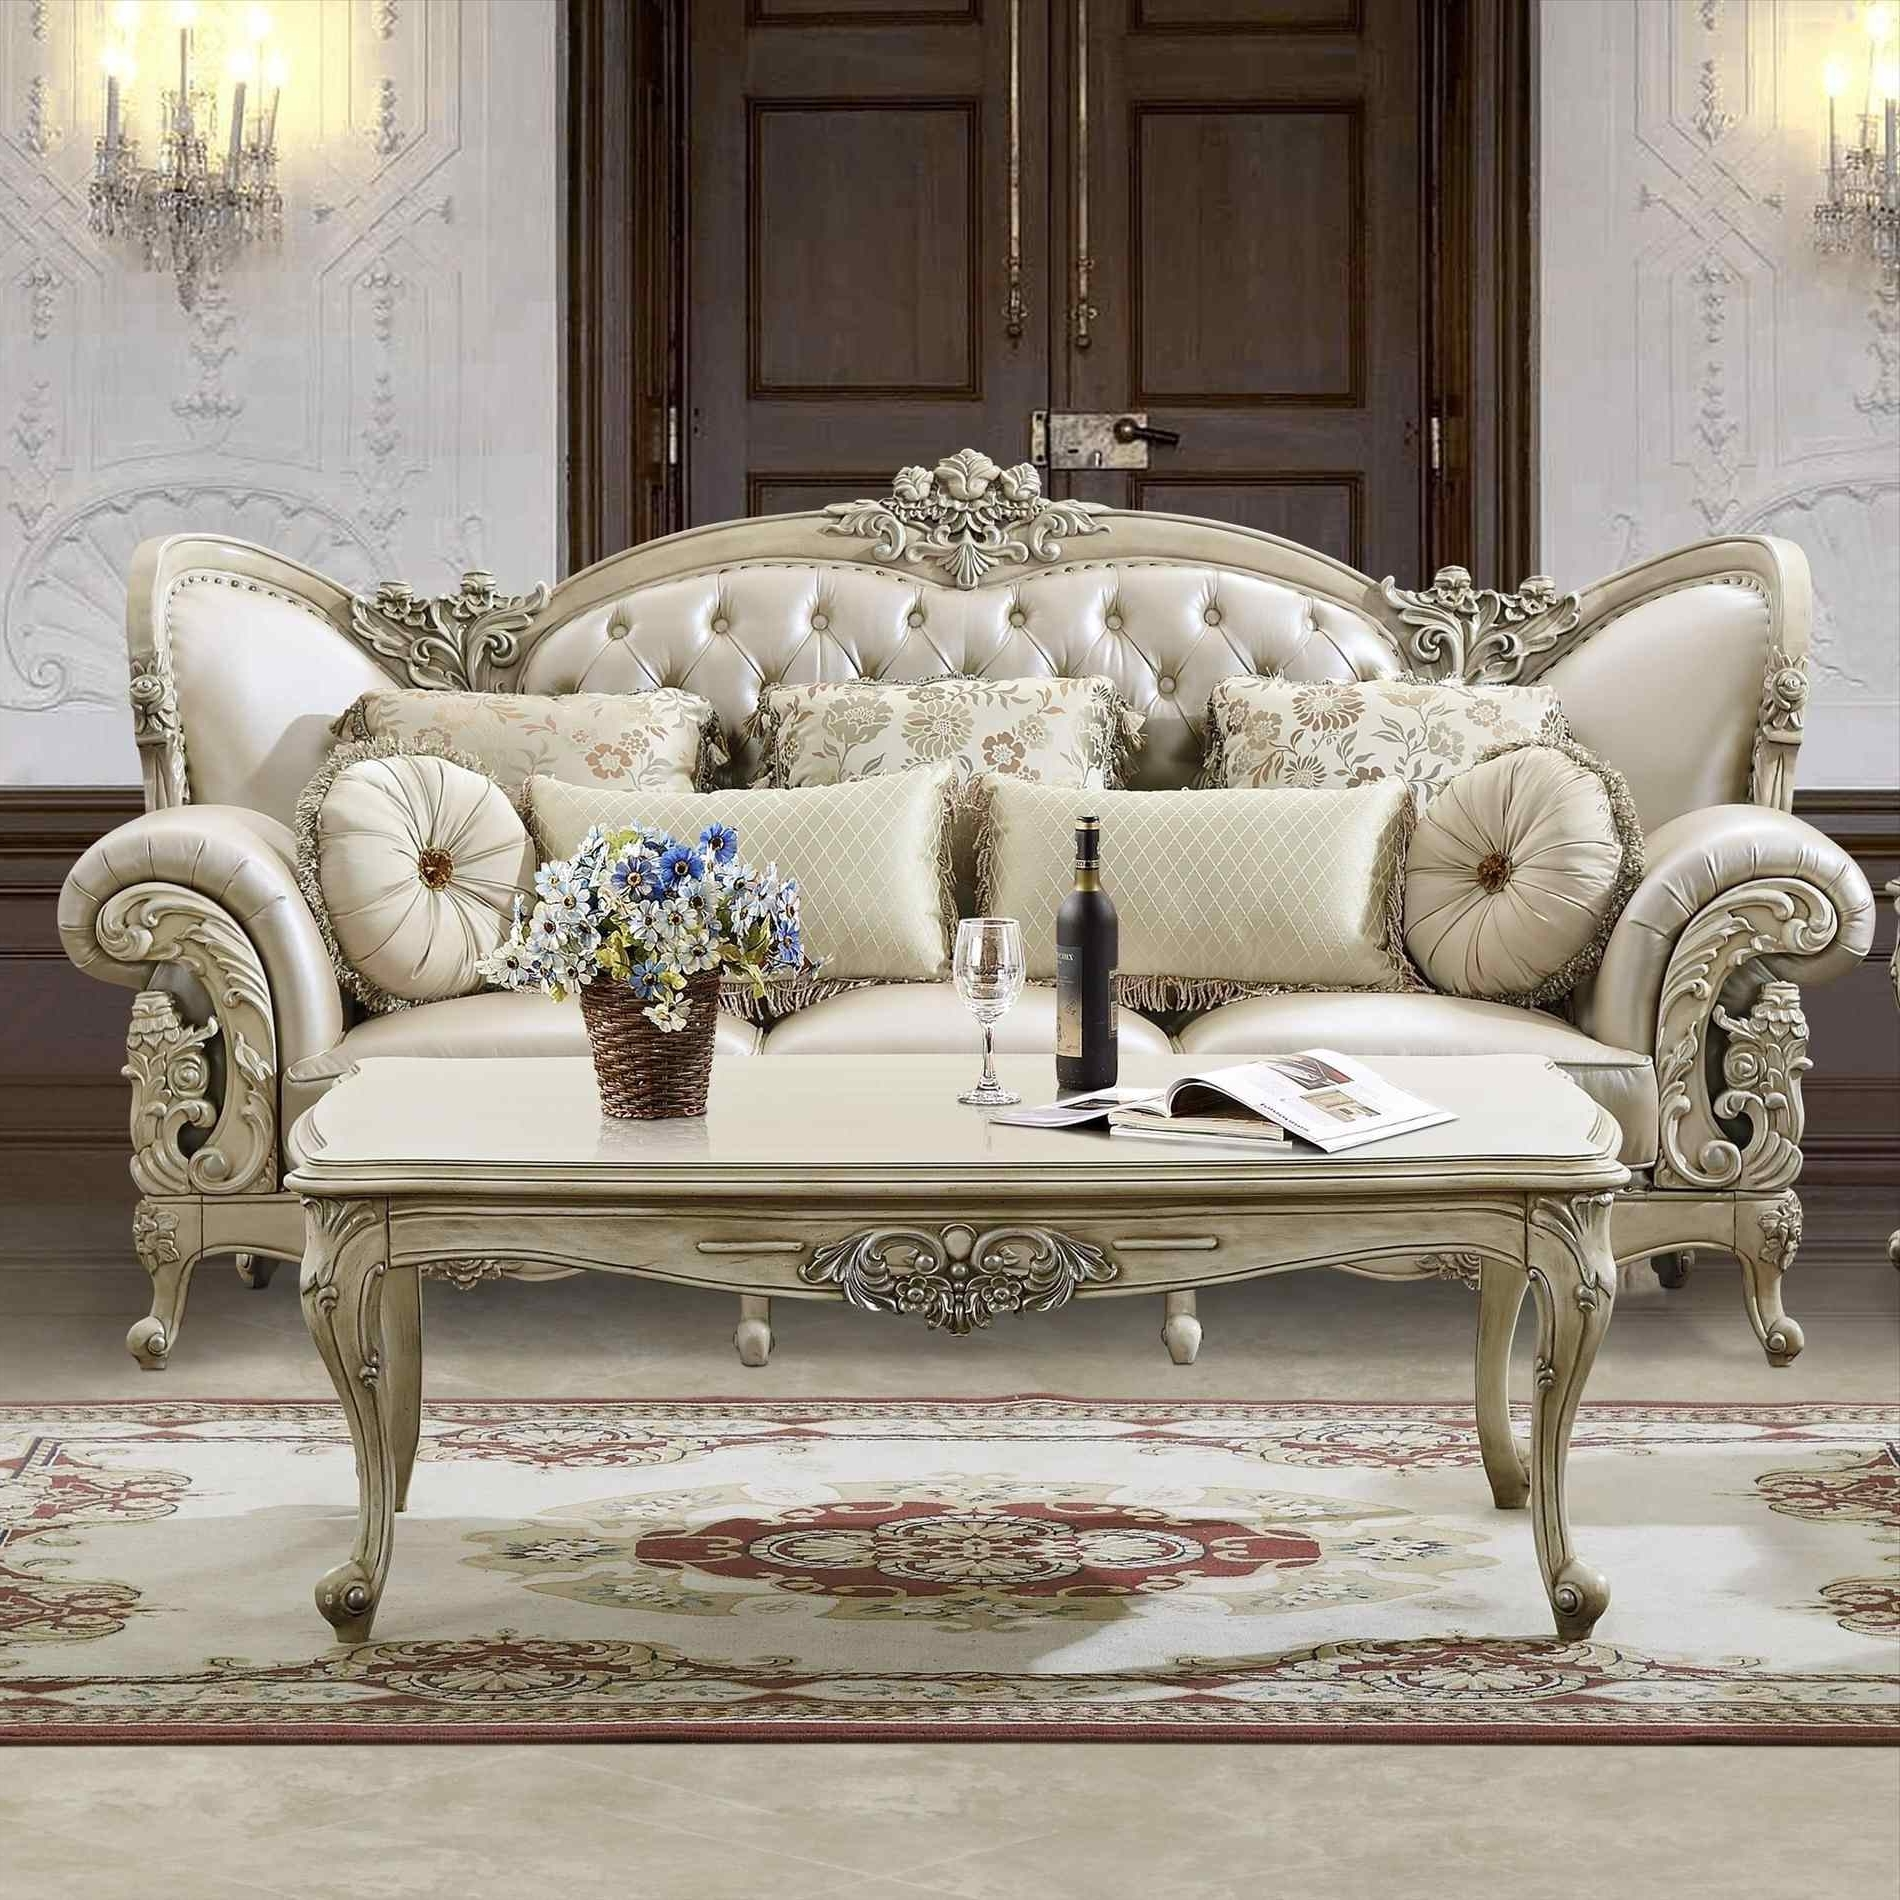 Most Recently Released Sofa : Sofa Aldie Nuvella Queen Living Traditional Fabric Sofas Inside Traditional Fabric Sofas (View 16 of 20)